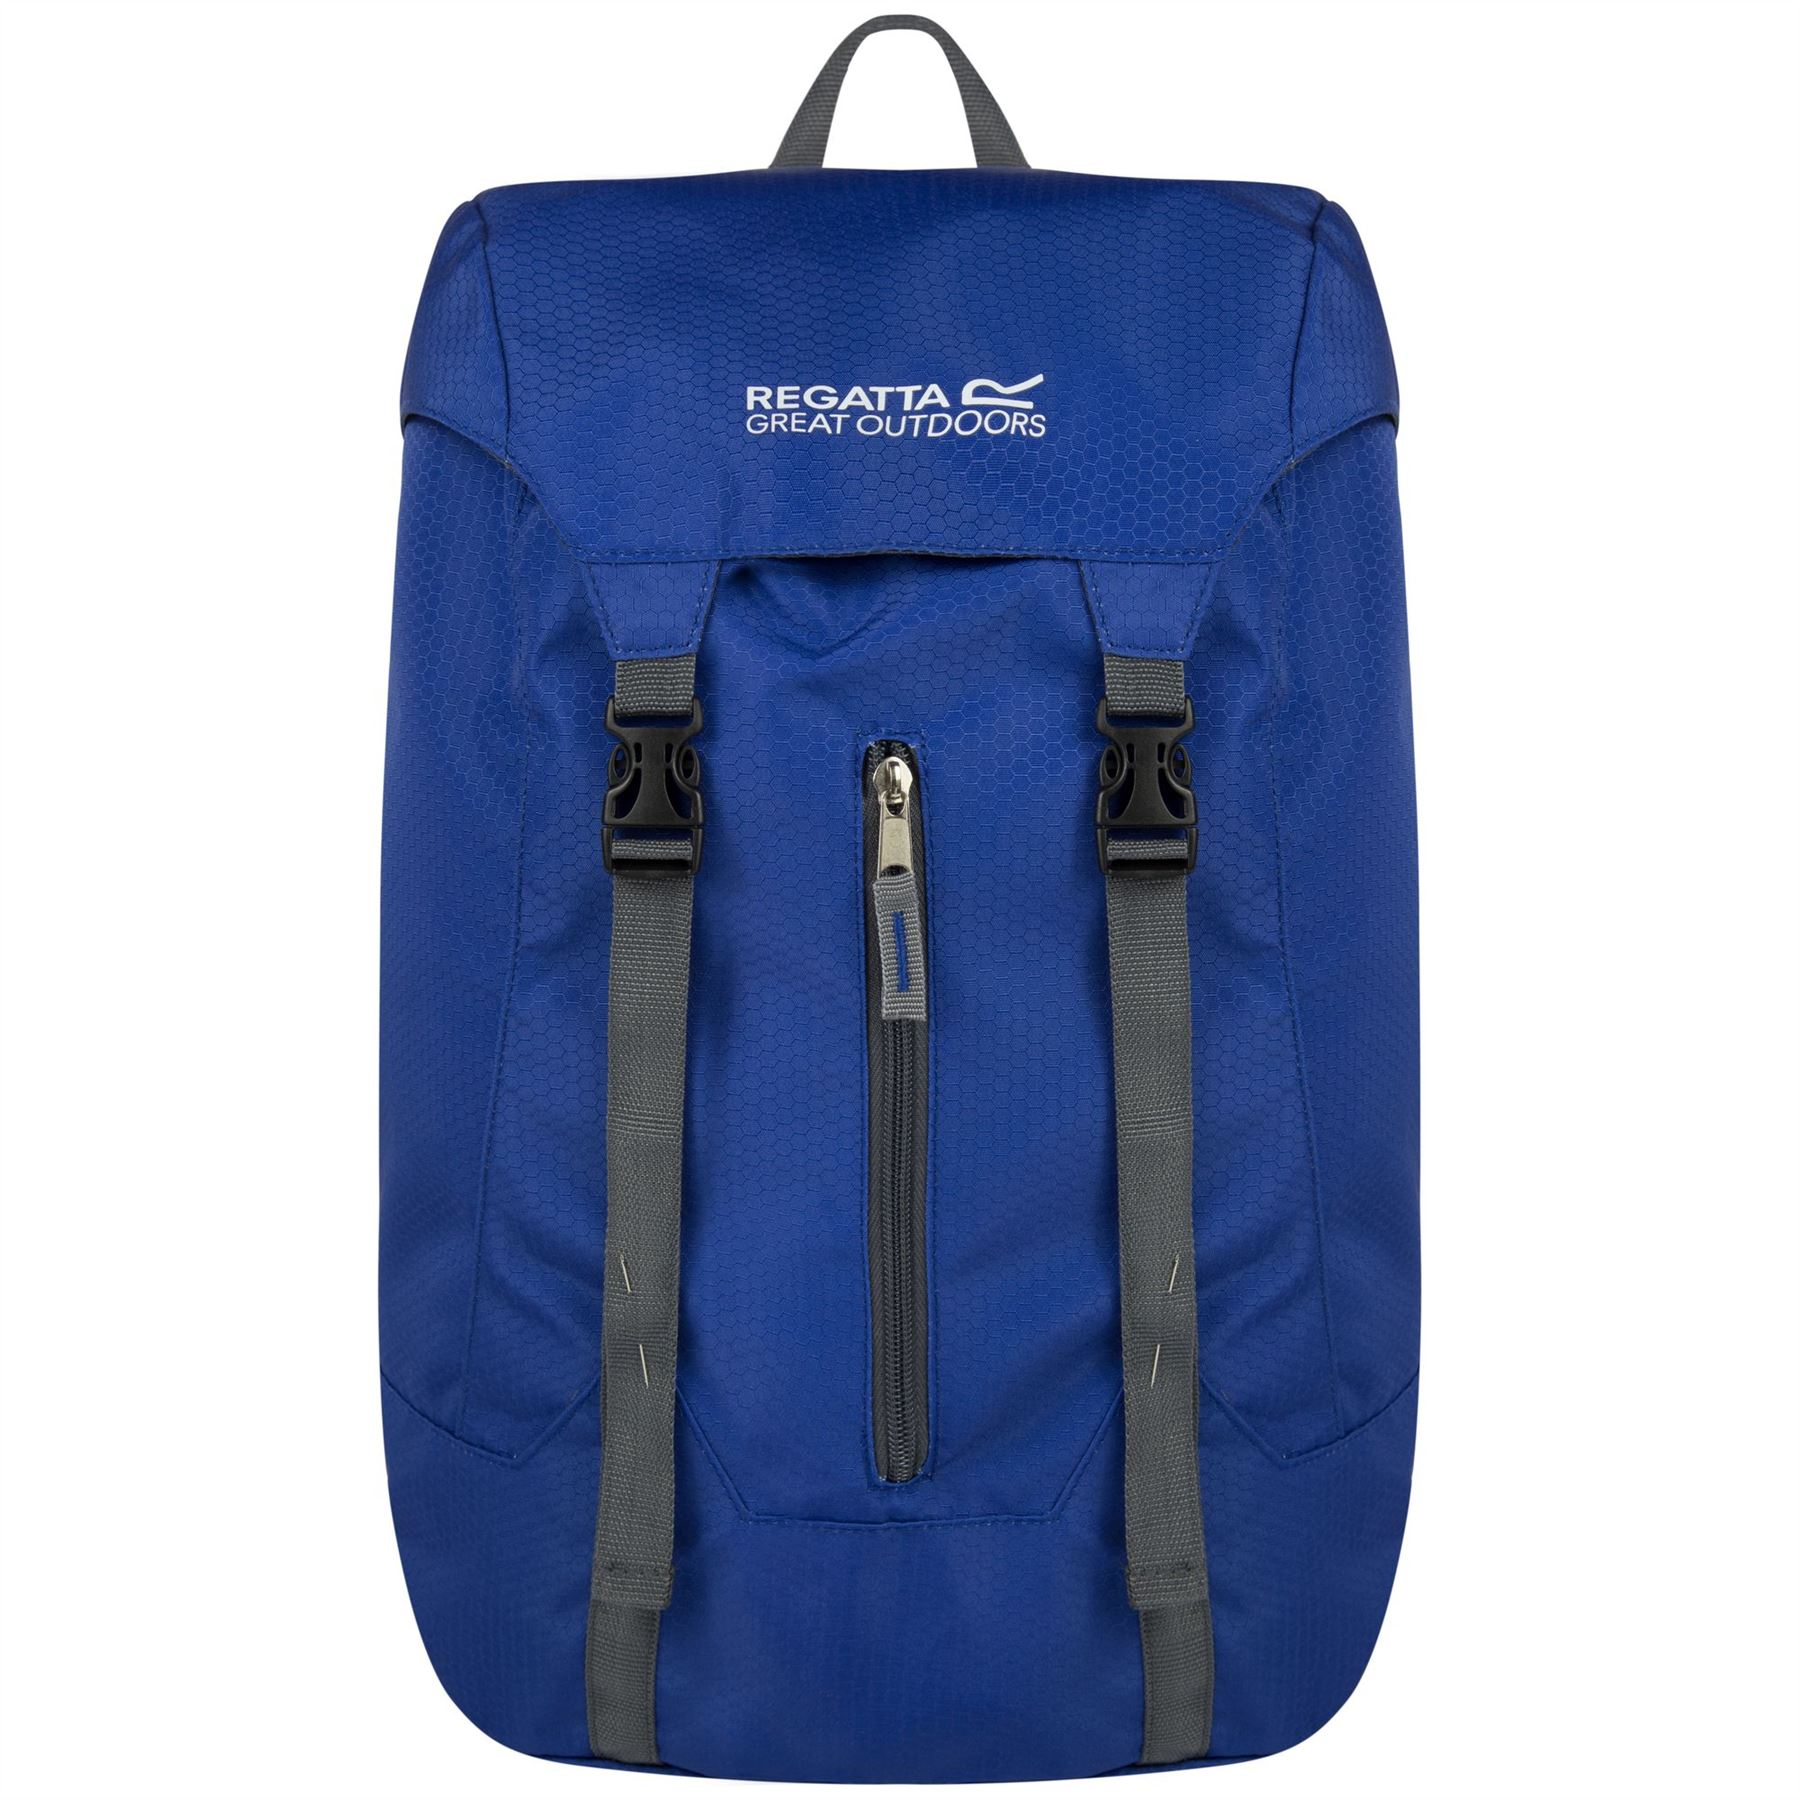 1e9cb786bb10 Regatta Easypack II Packaway 25 Litre Rucksack Backpack Surf Spray. About  this product. Picture 1 of 3  Picture 2 of 3 ...